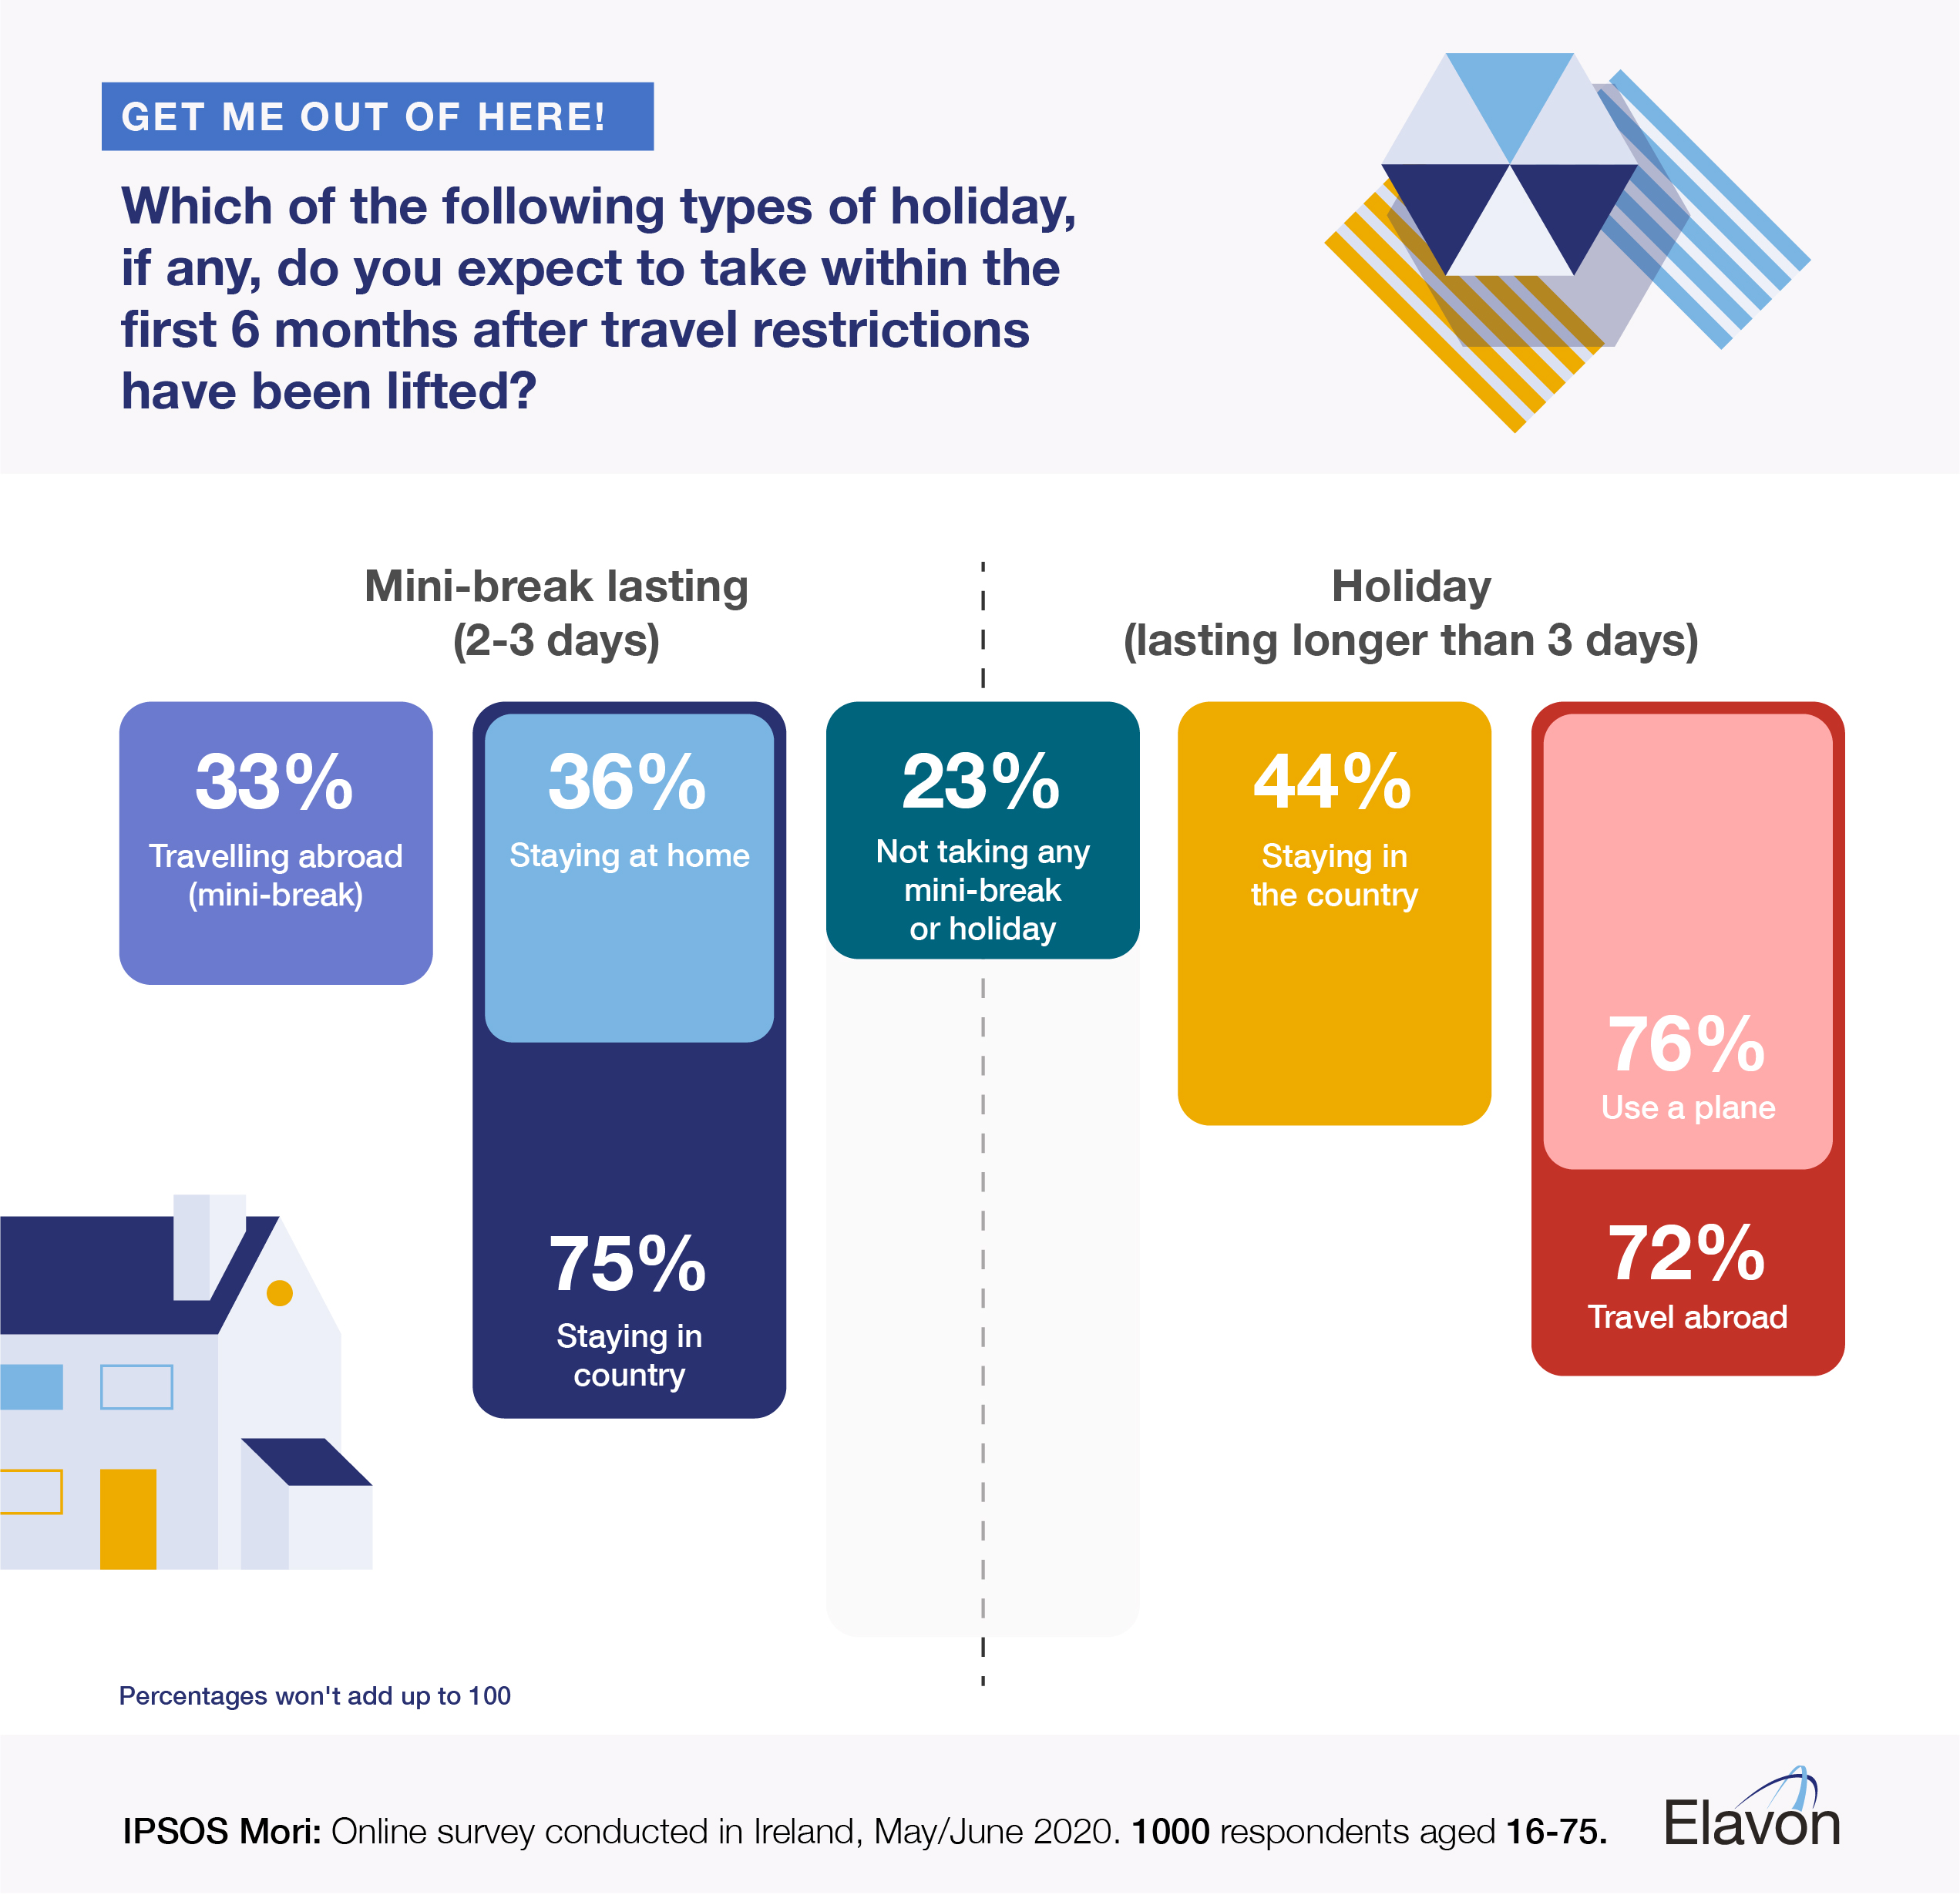 Elavon Ipsos Mori IE holiday spend